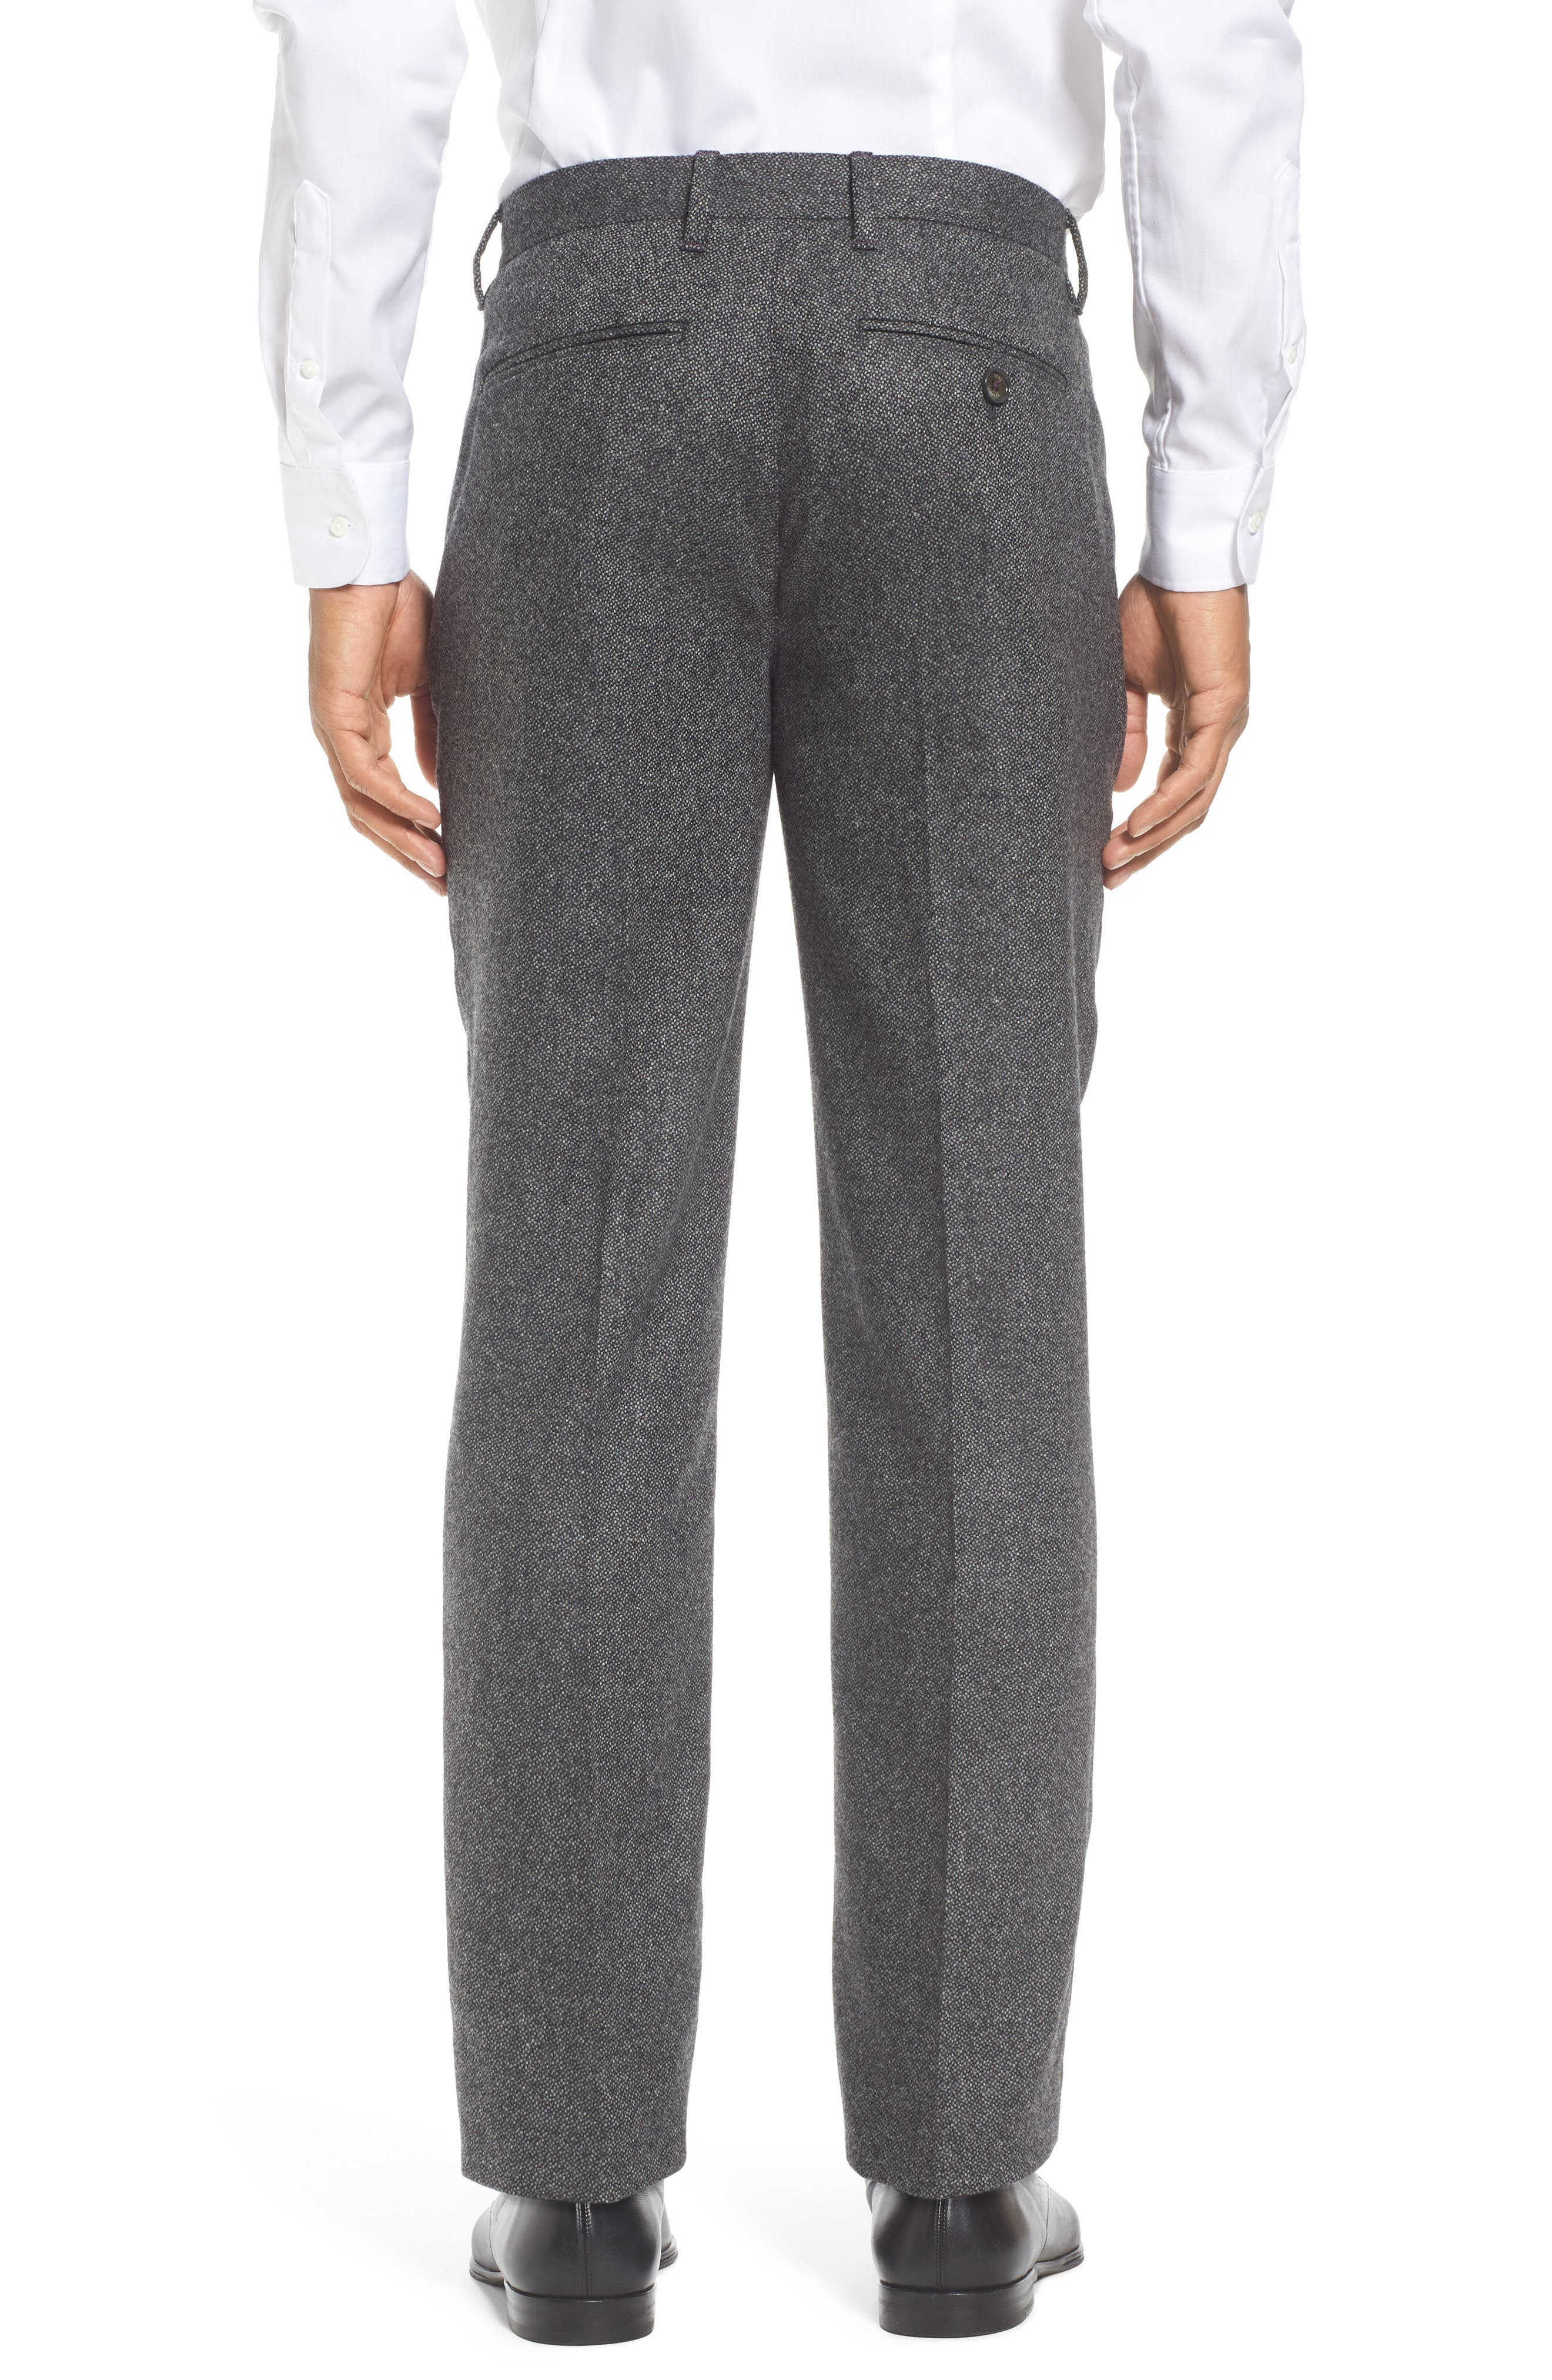 Modern Slim Fit Trousers,                             Alternate thumbnail 2, color,                             Charcoal